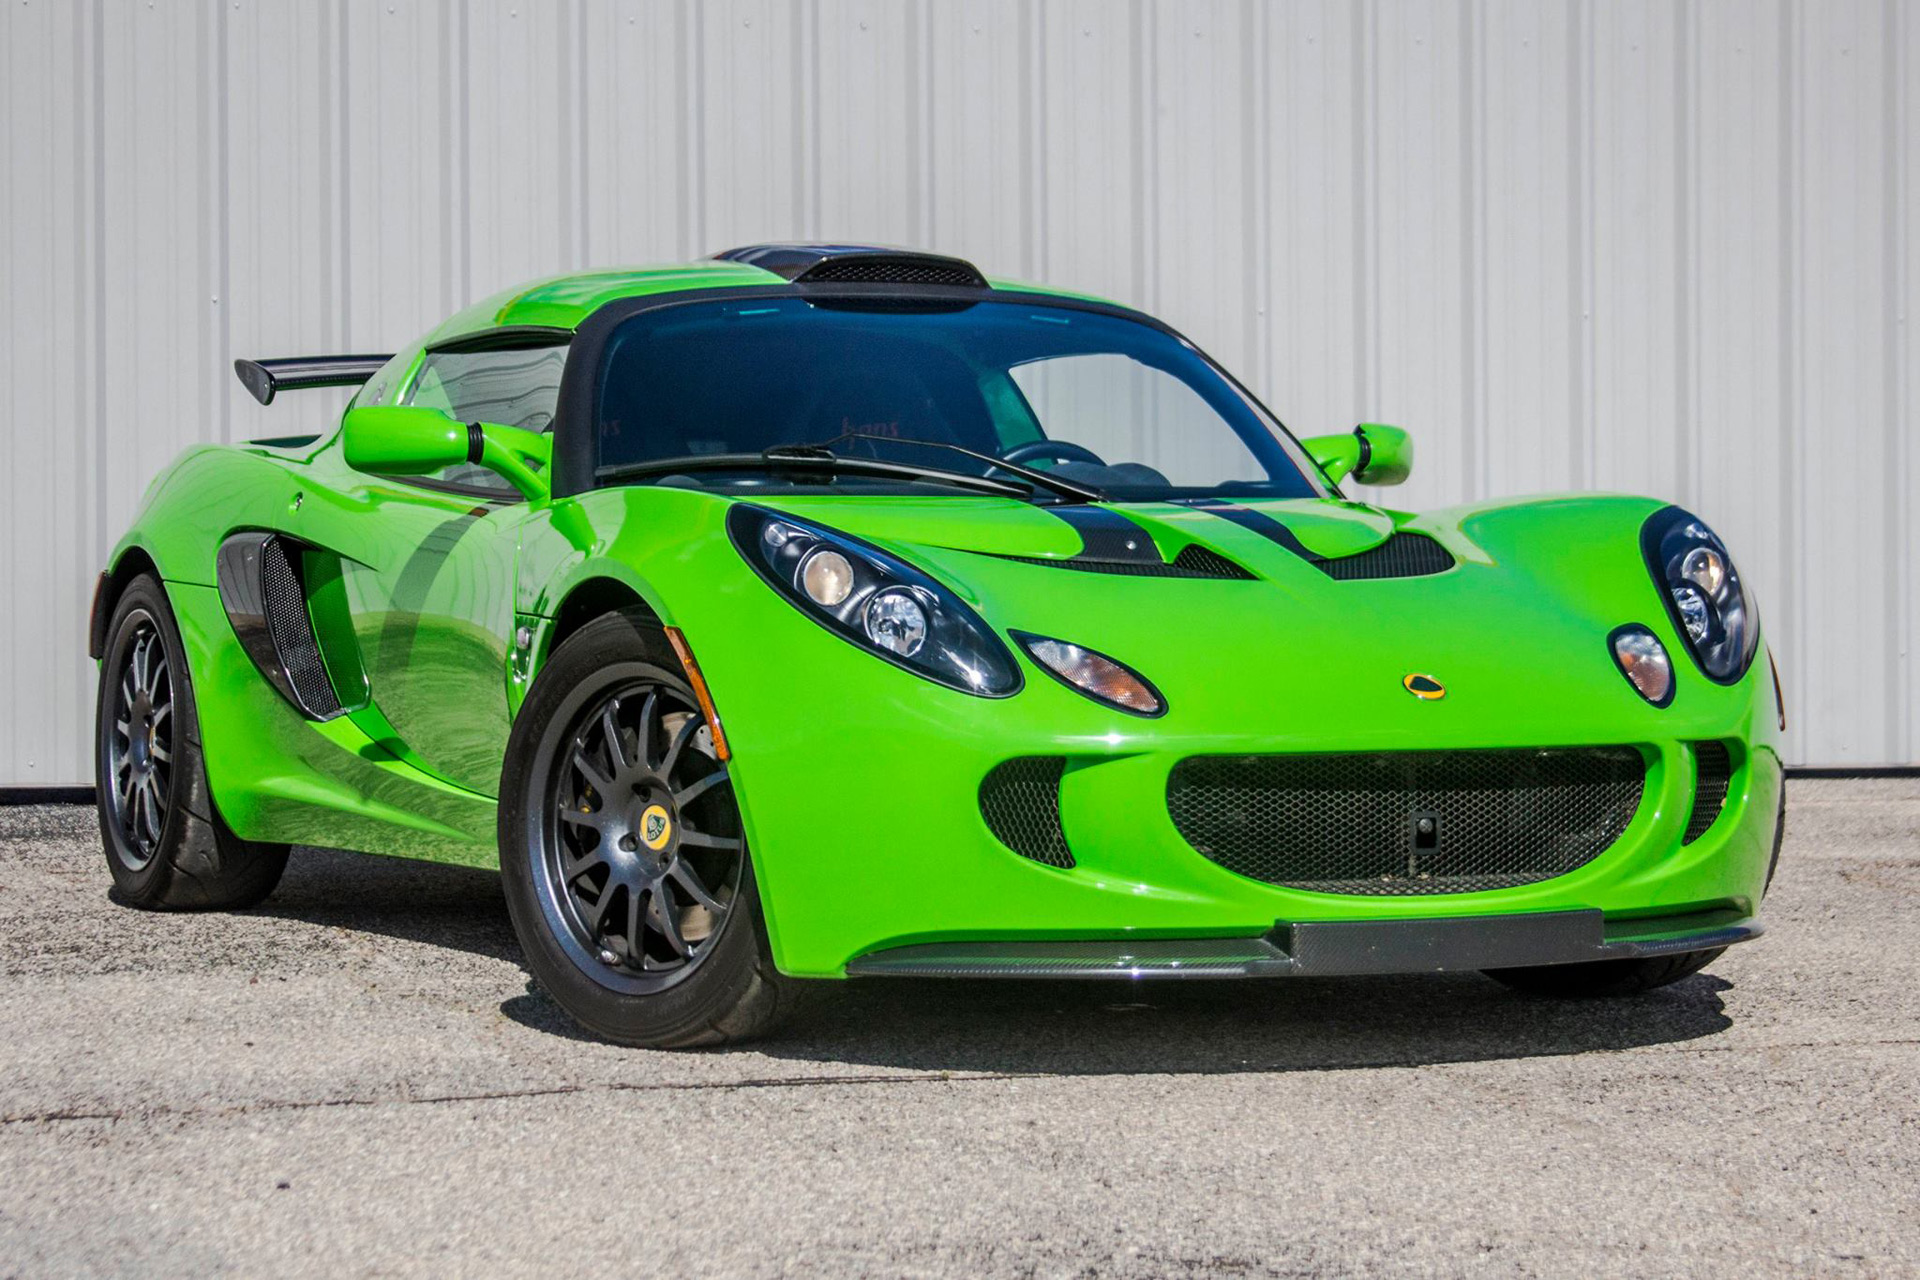 Lotus Exige once owned by Jerry Seinfeld sells for 90400